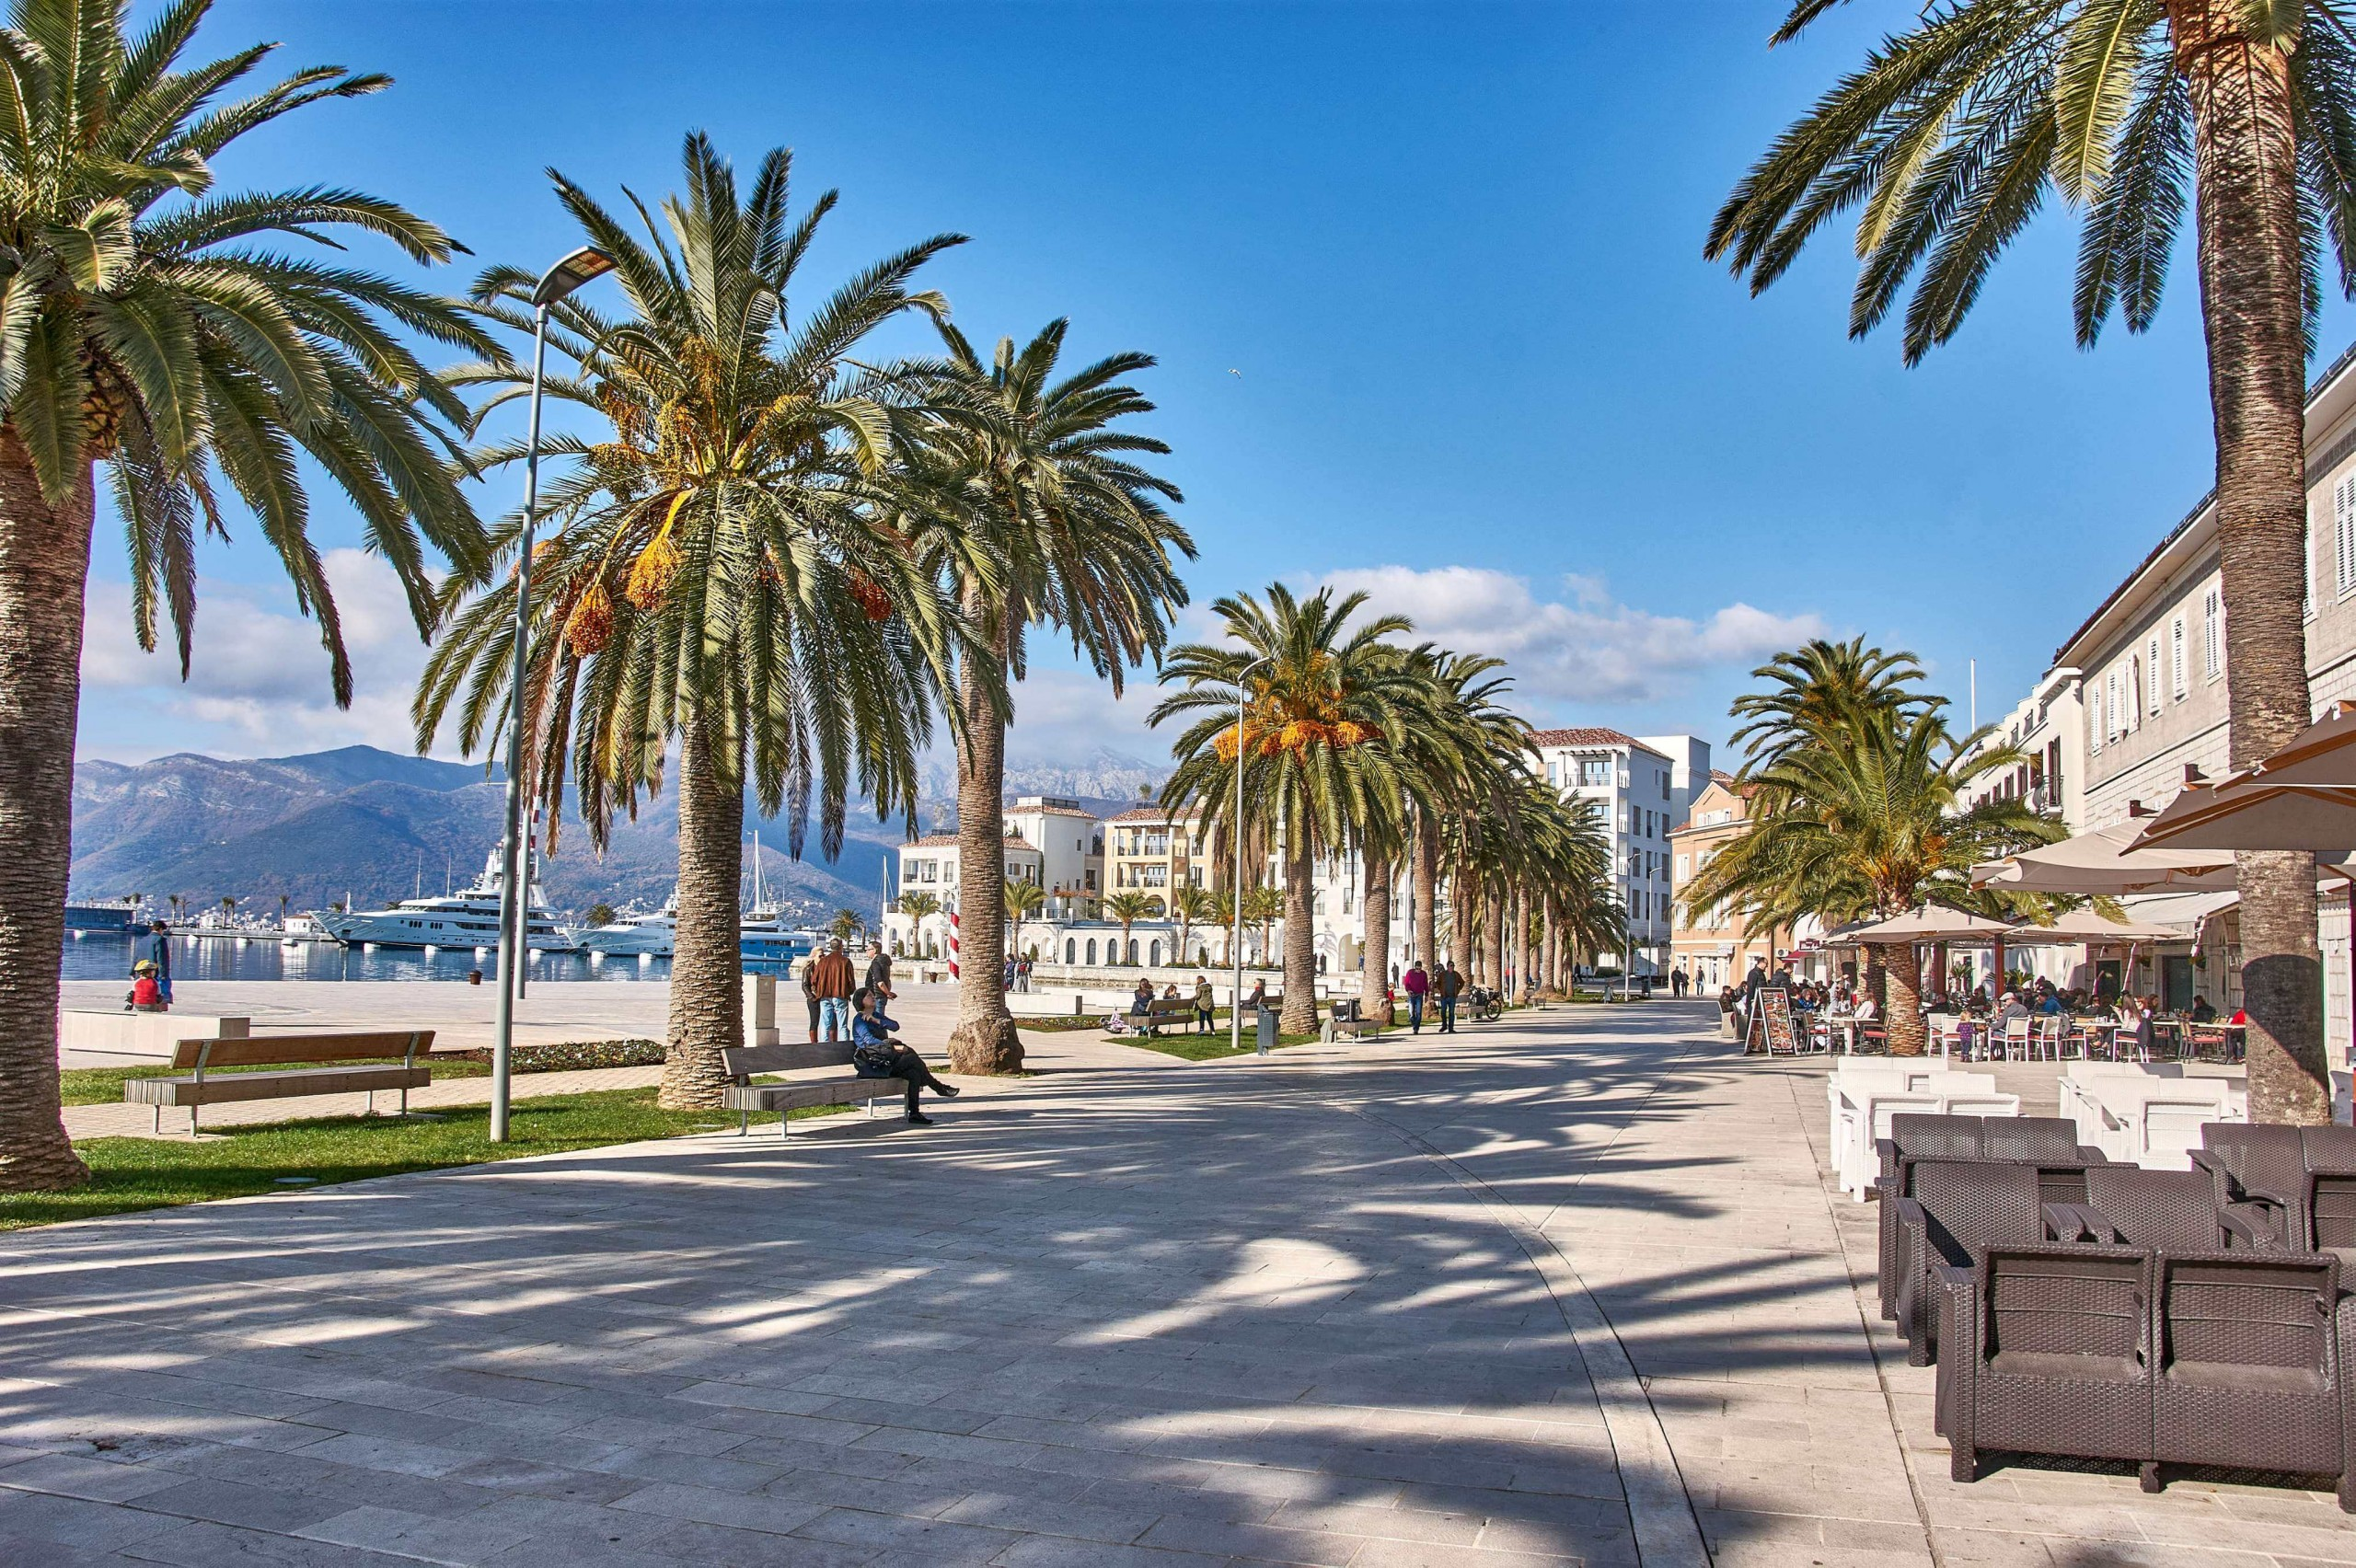 Tivat, the Town with a Modern Porto Montenegro Marina - My Magic Earth